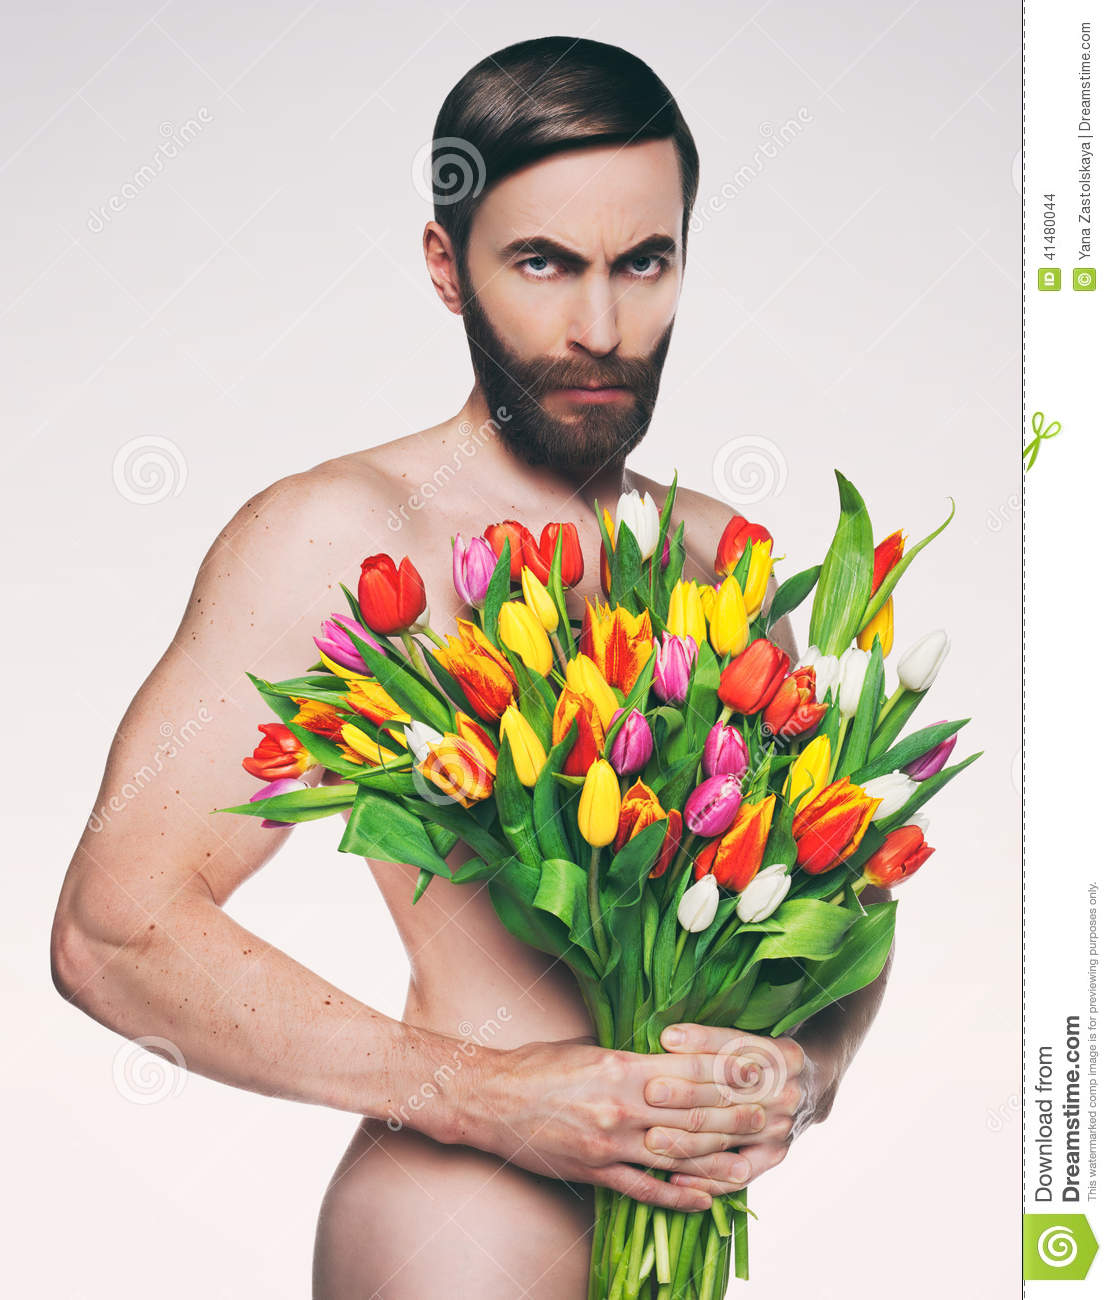 Men portrait with a bouquet of flowers stock photo image of men portrait with a bouquet of flowers izmirmasajfo Image collections